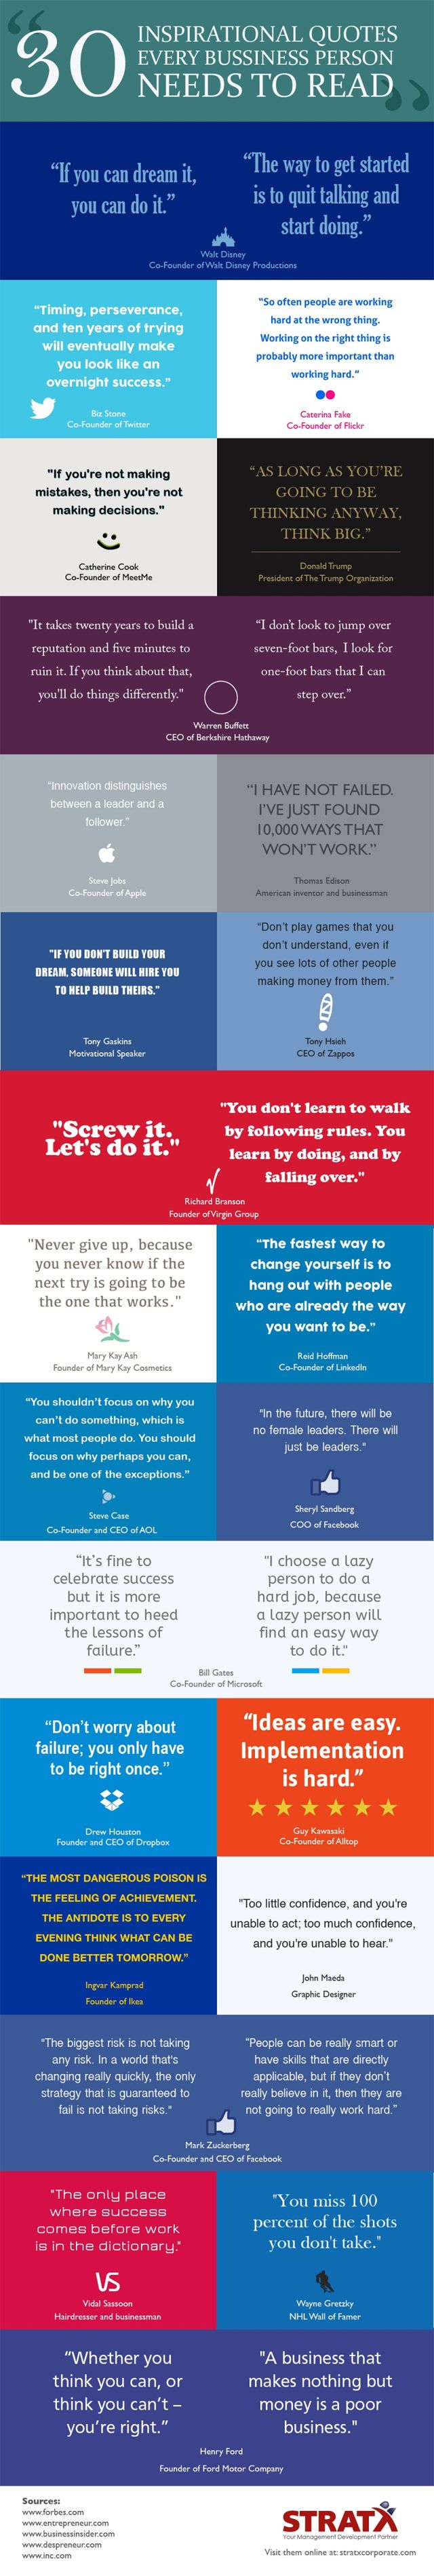 30 inspirational quotes that every business owner should read